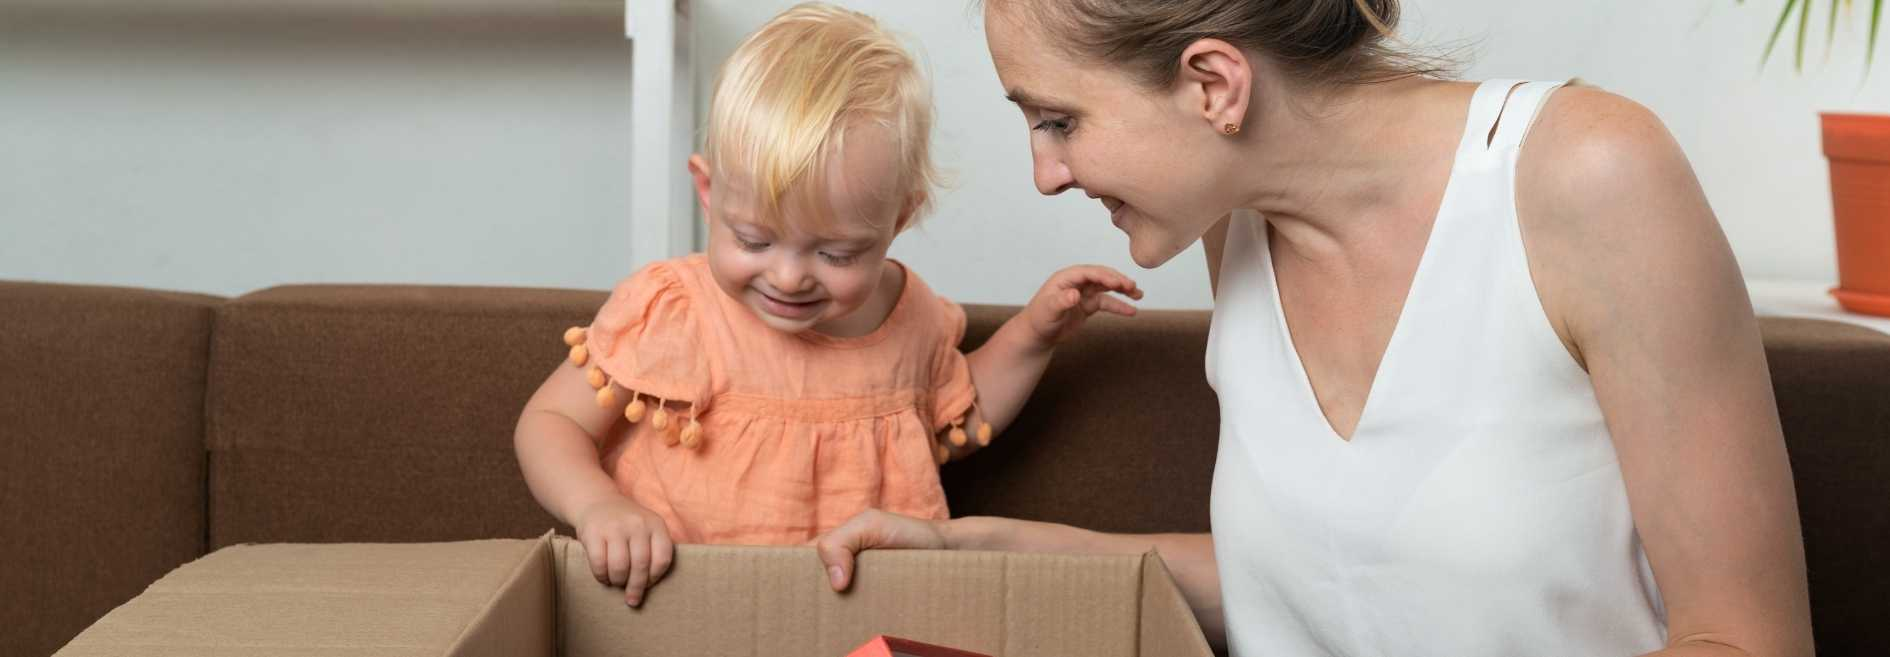 ChildSavers explains calm down boxes and what to put in calm down boxes for children and adults.